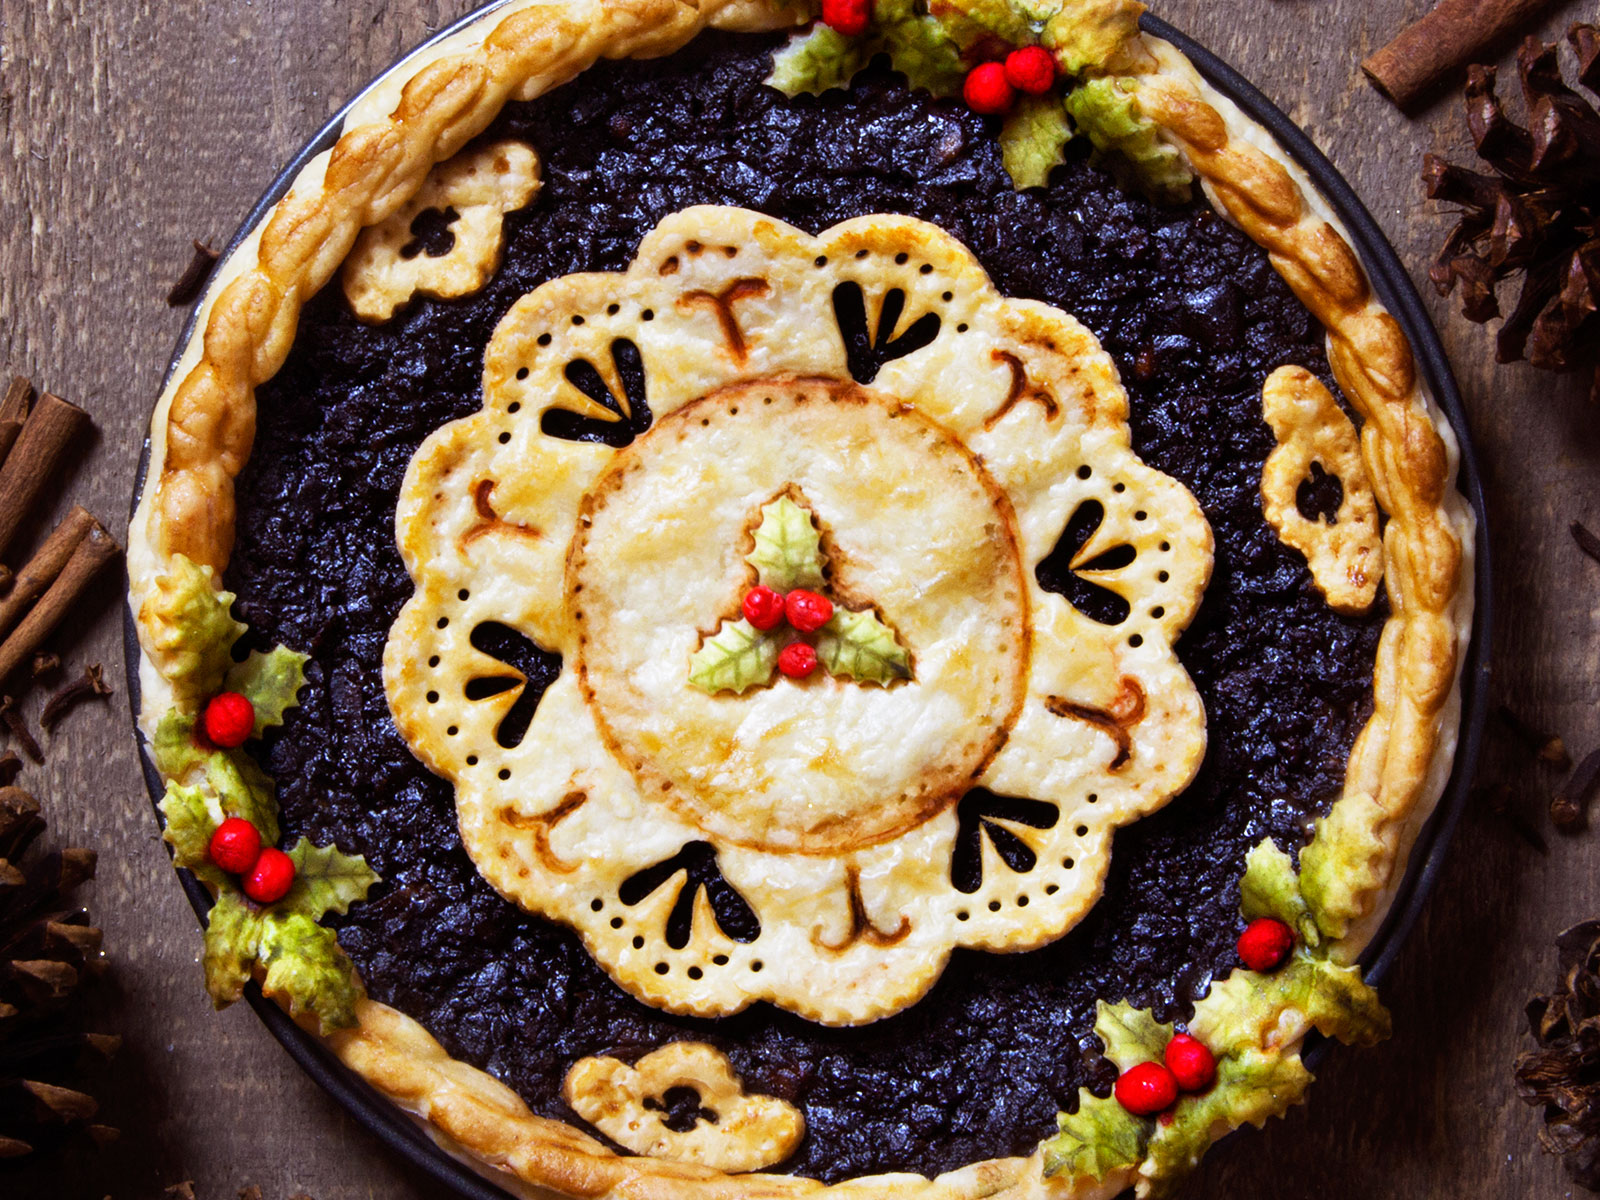 Lace Mincemeat Pie